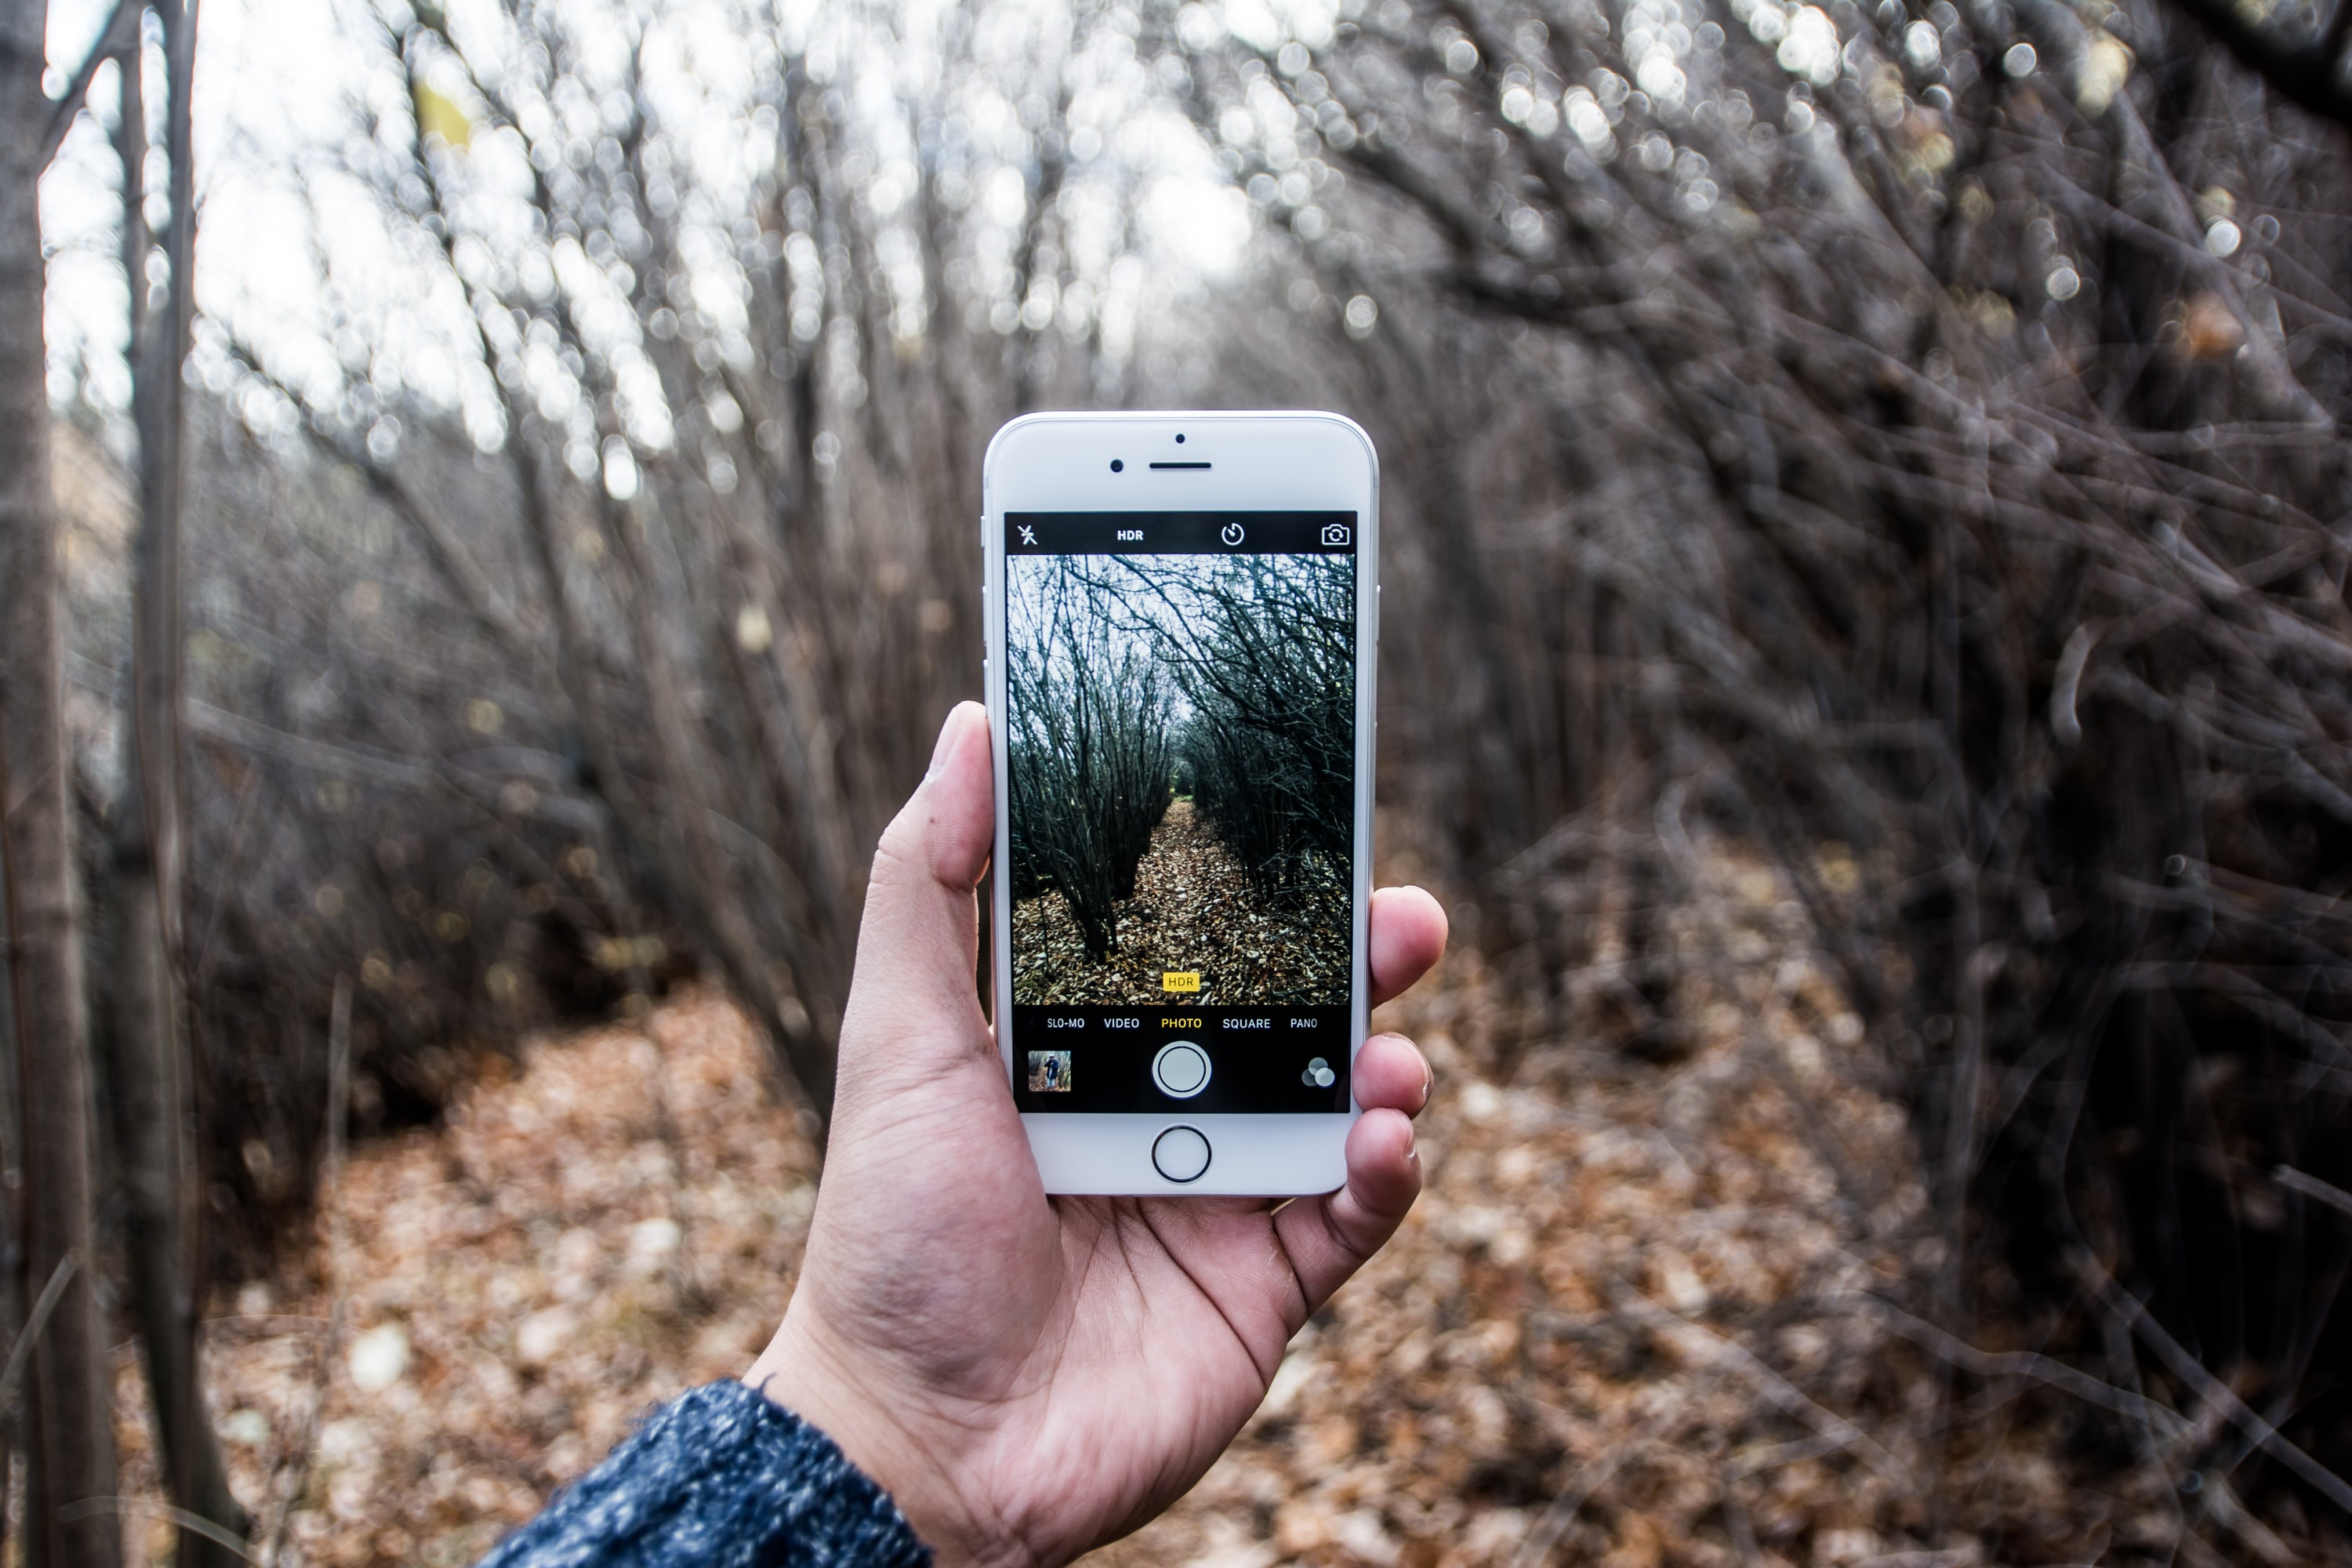 A person taking a picture with an iPhone in a forest in the autumn